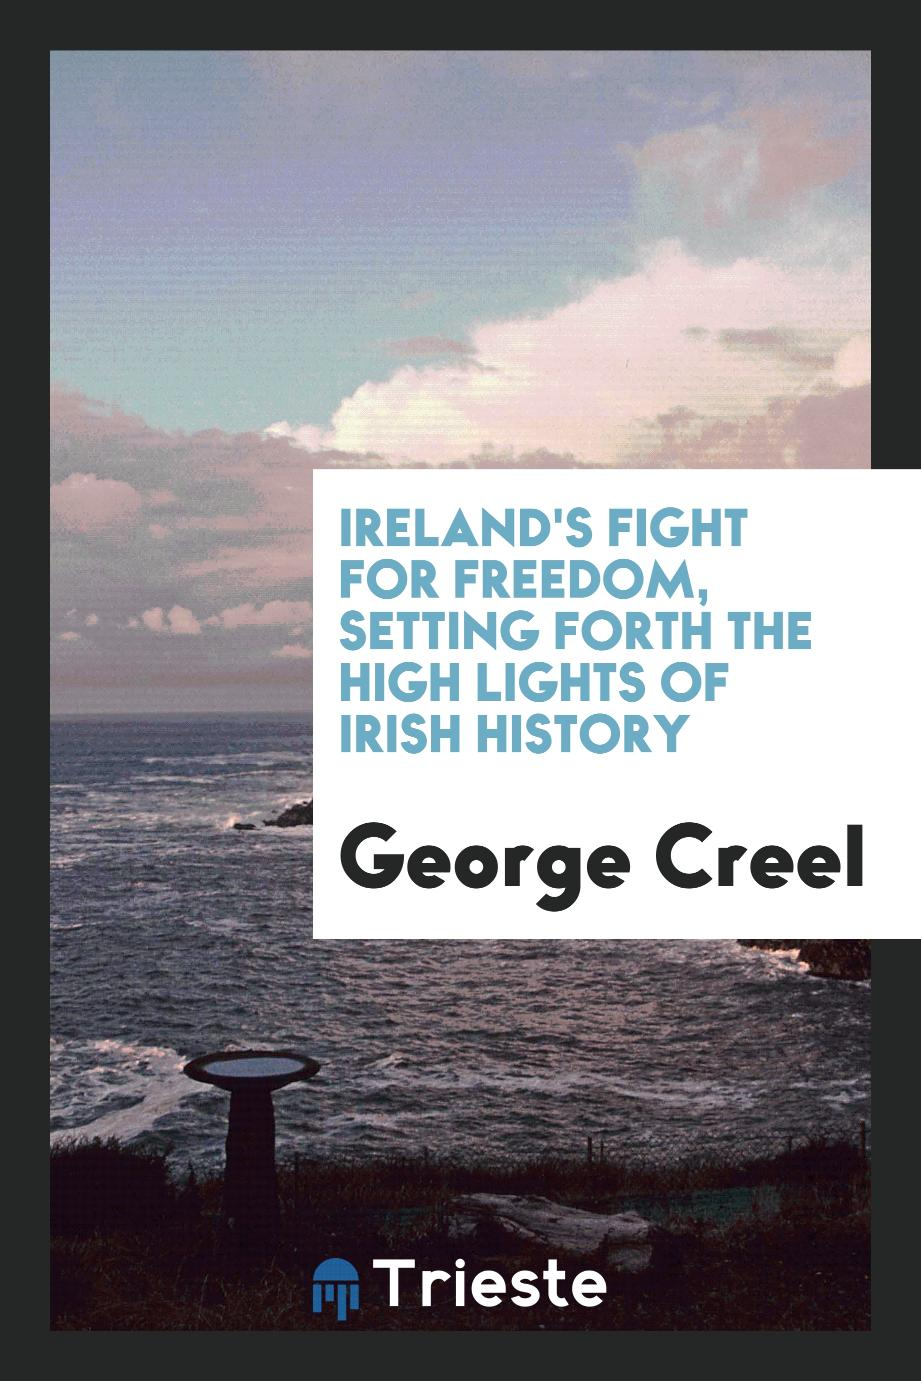 Ireland's fight for freedom, setting forth the high lights of Irish history